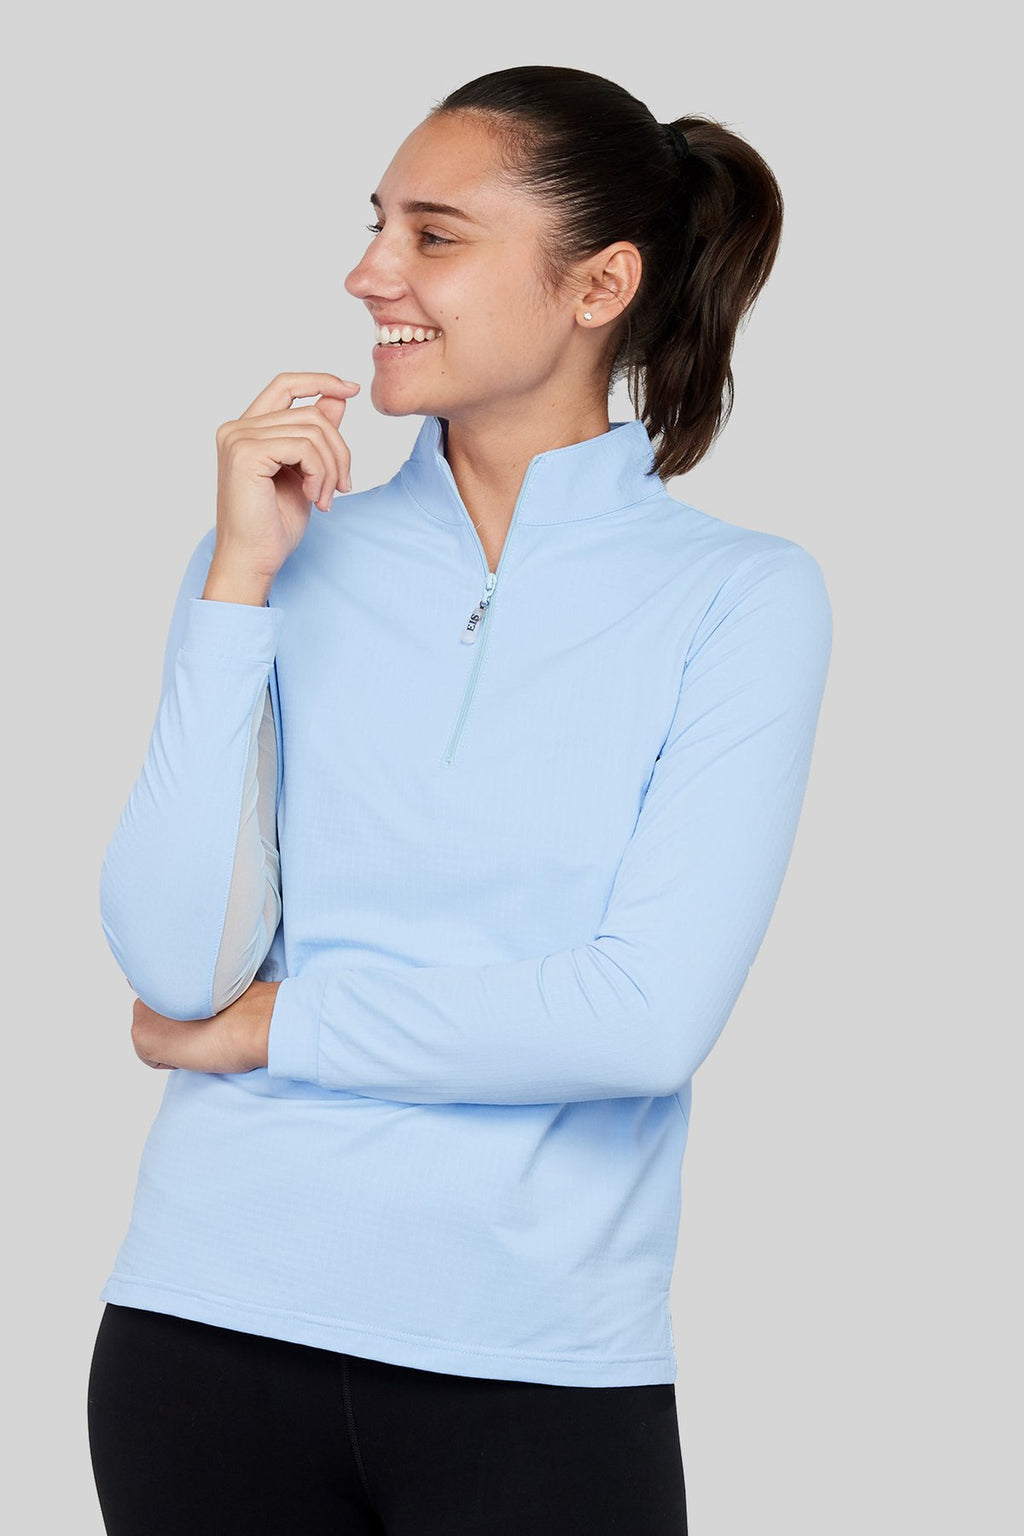 EIS Sun Shirt - Powder Blue - The Dressage Store